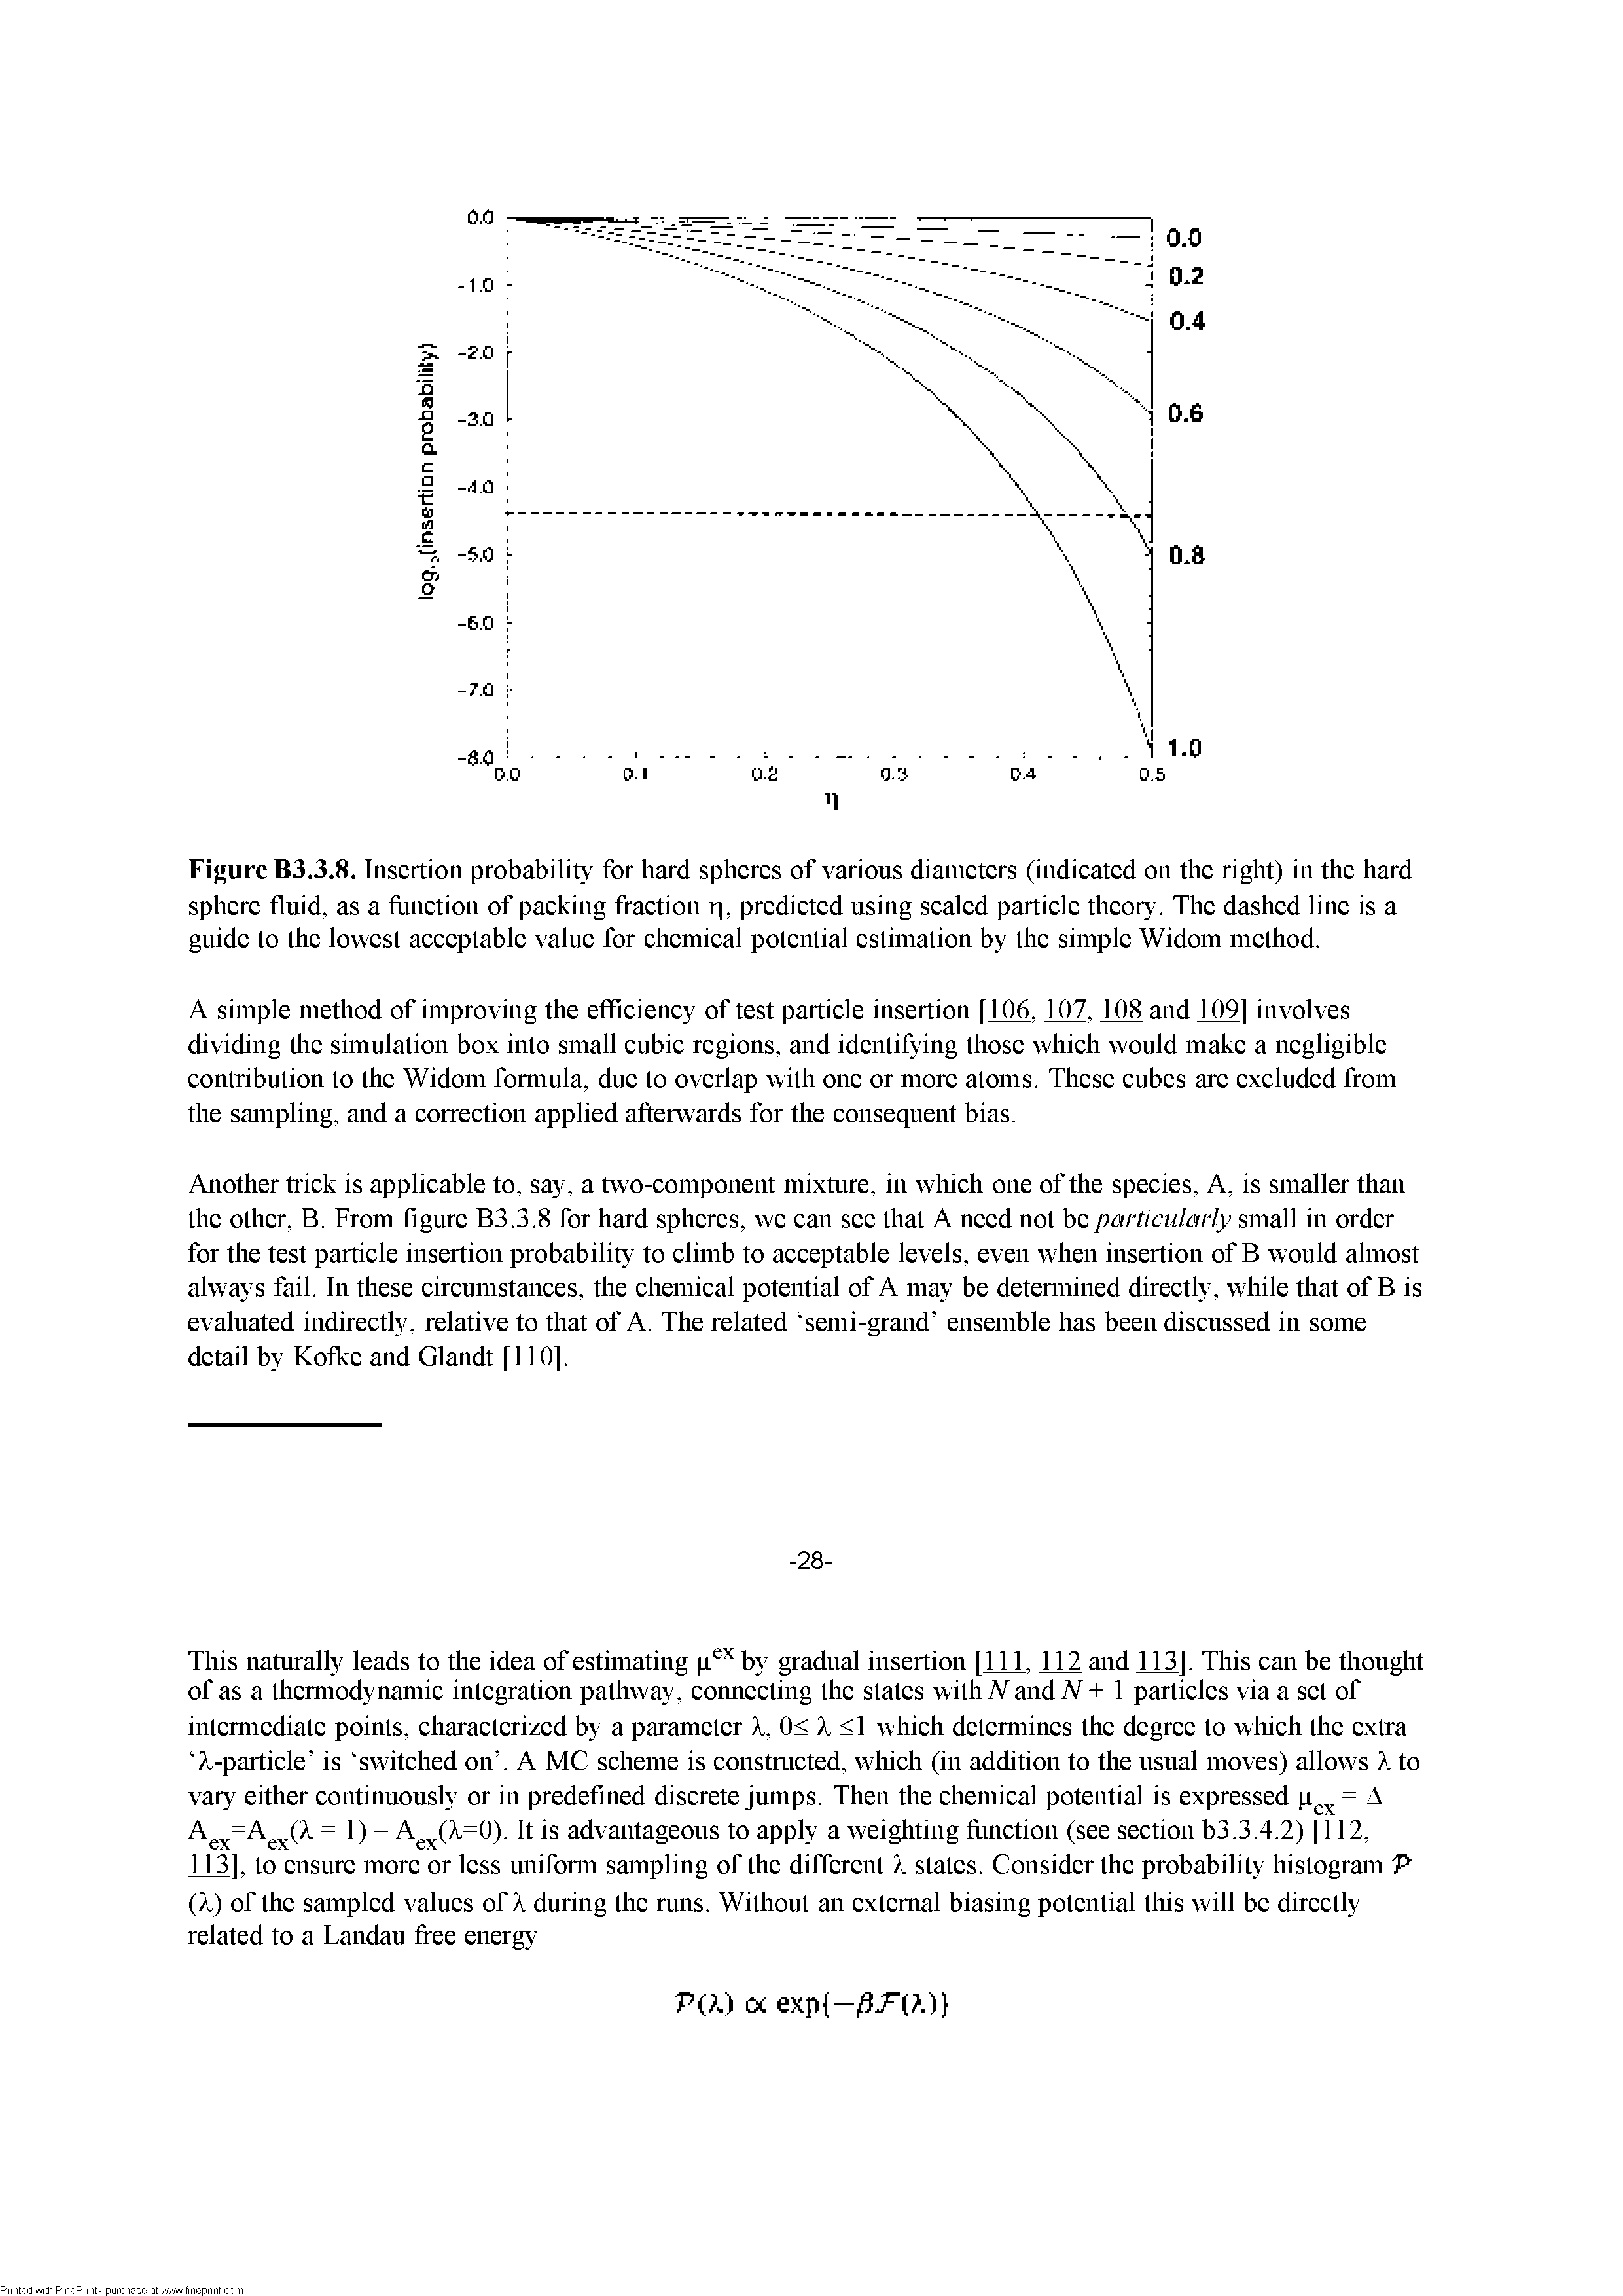 Figure B3.3.8. Insertion probability for hard spheres of various diameters (indieated on the right) in the hard sphere fluid, as a fiinetion of paeking fraetion p, predieted using sealed partiele theory. The dashed line is a guide to the lowest aeeeptable value for ehemieal potential estimation by the simple Widom method.